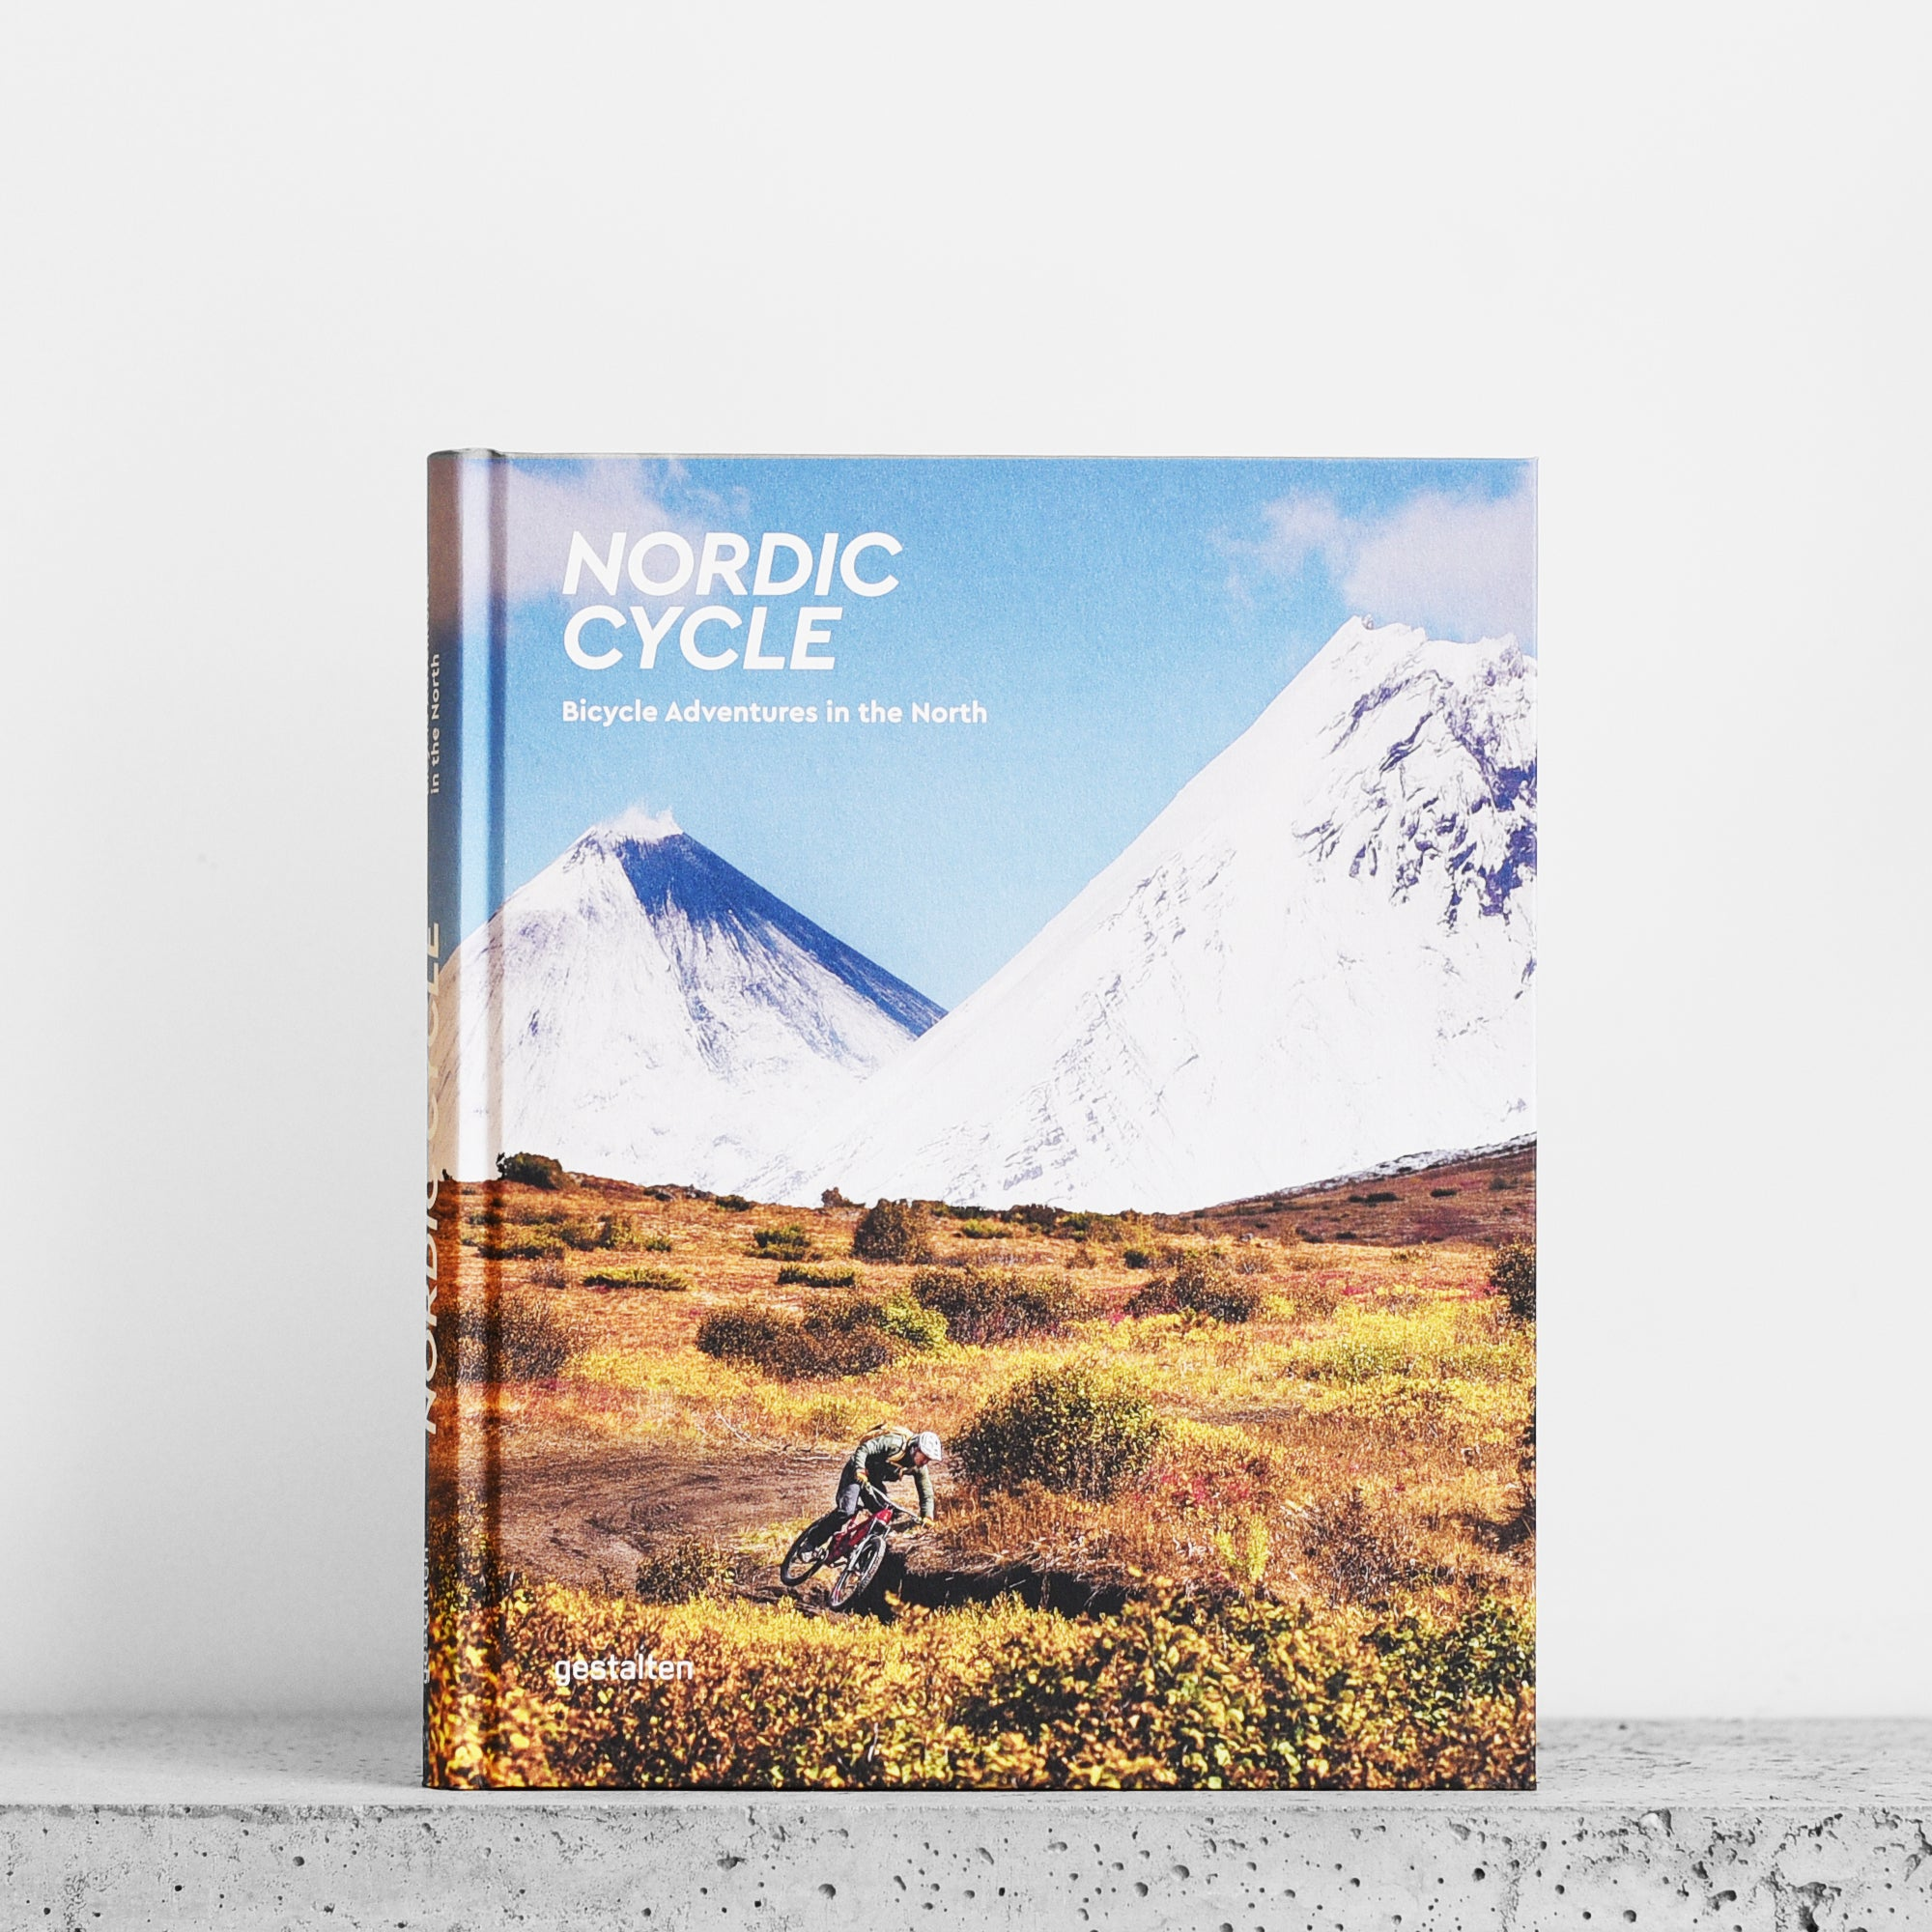 Nordic Cycle: Bicycle Adventures in the North